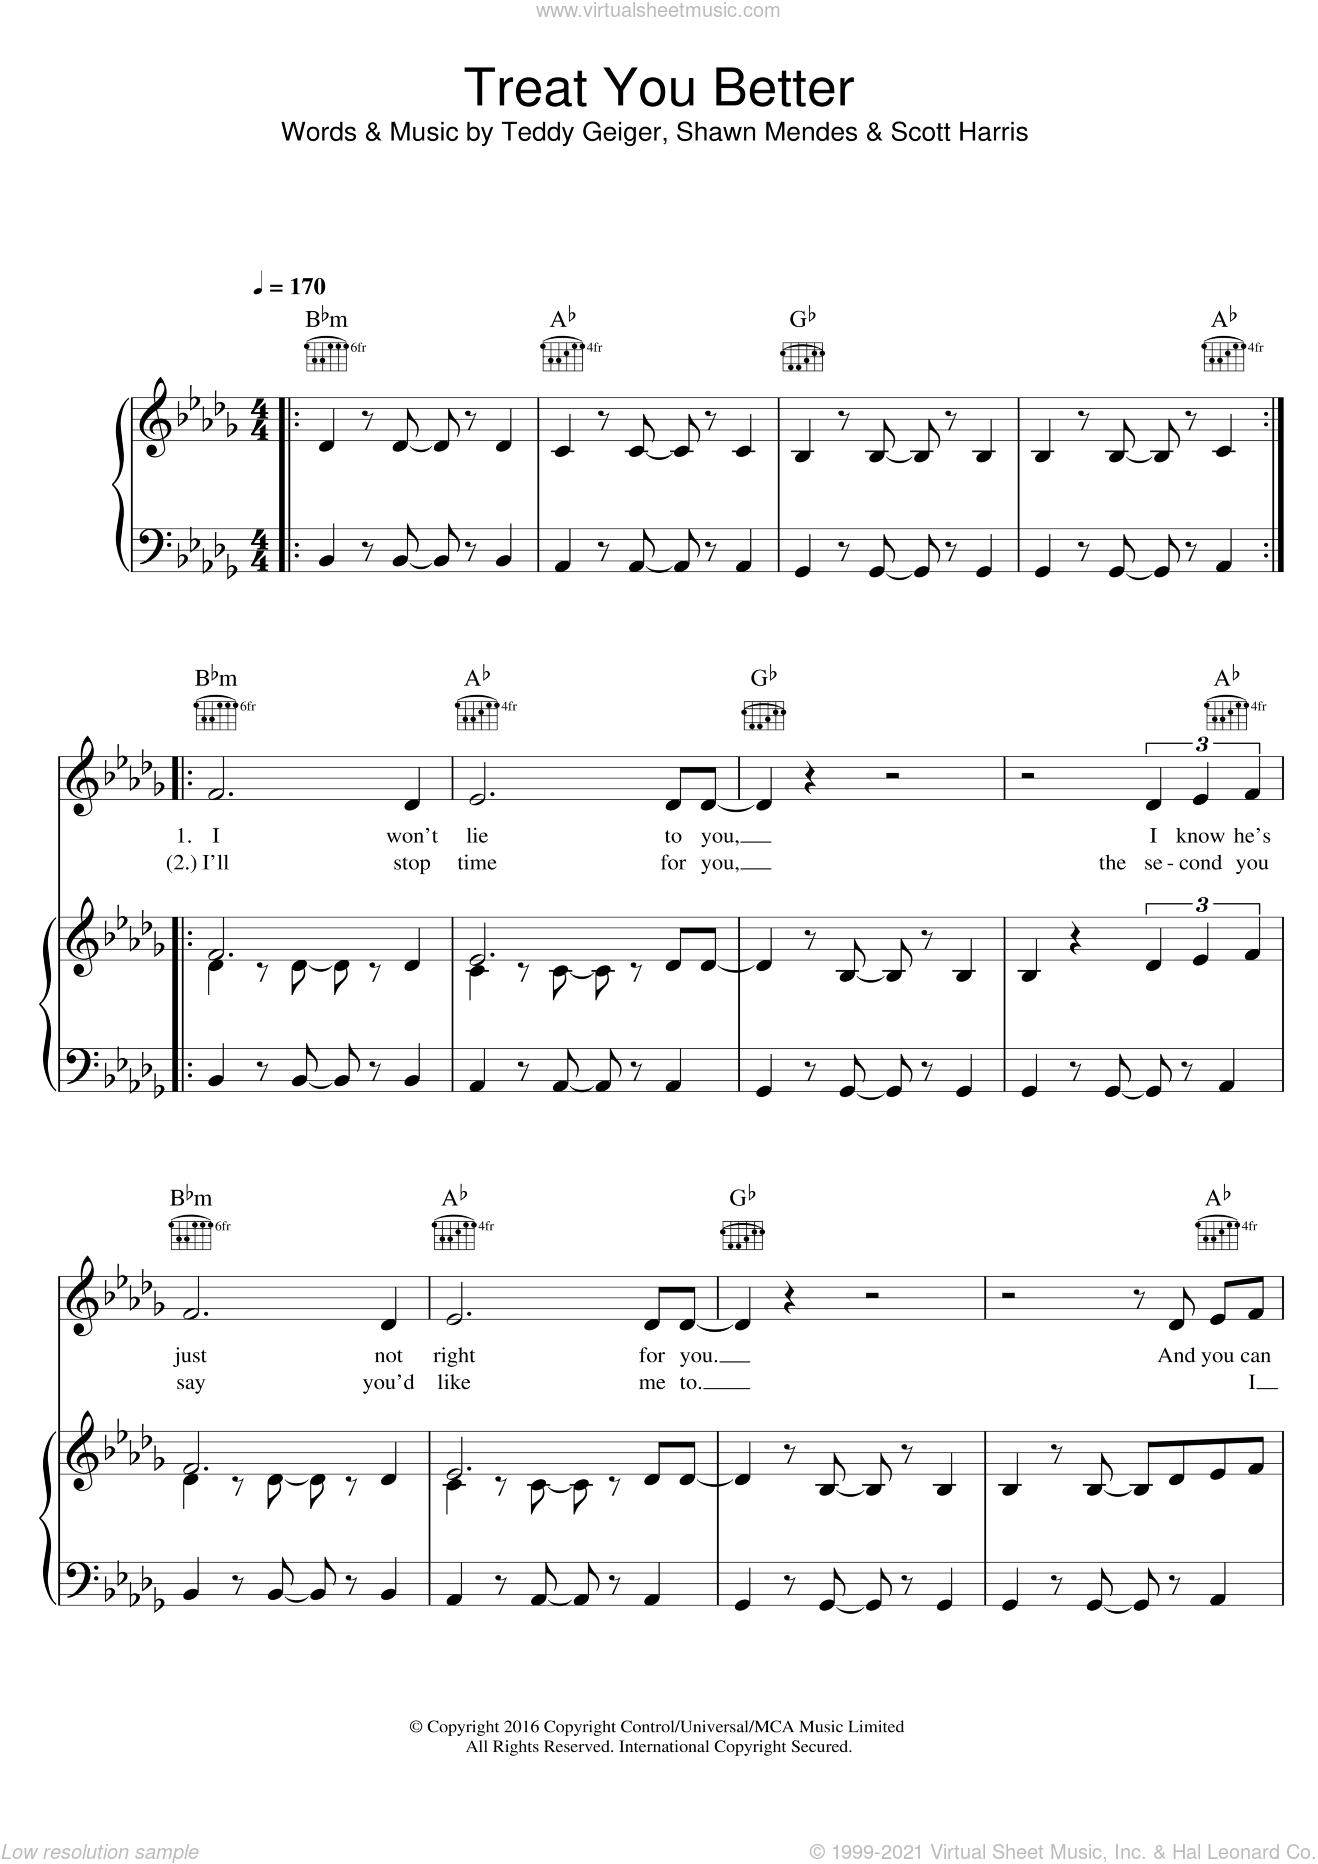 Treat You Better sheet music for voice, piano or guitar by Shawn Mendes, Scott Harris and Teddy Geiger, intermediate skill level